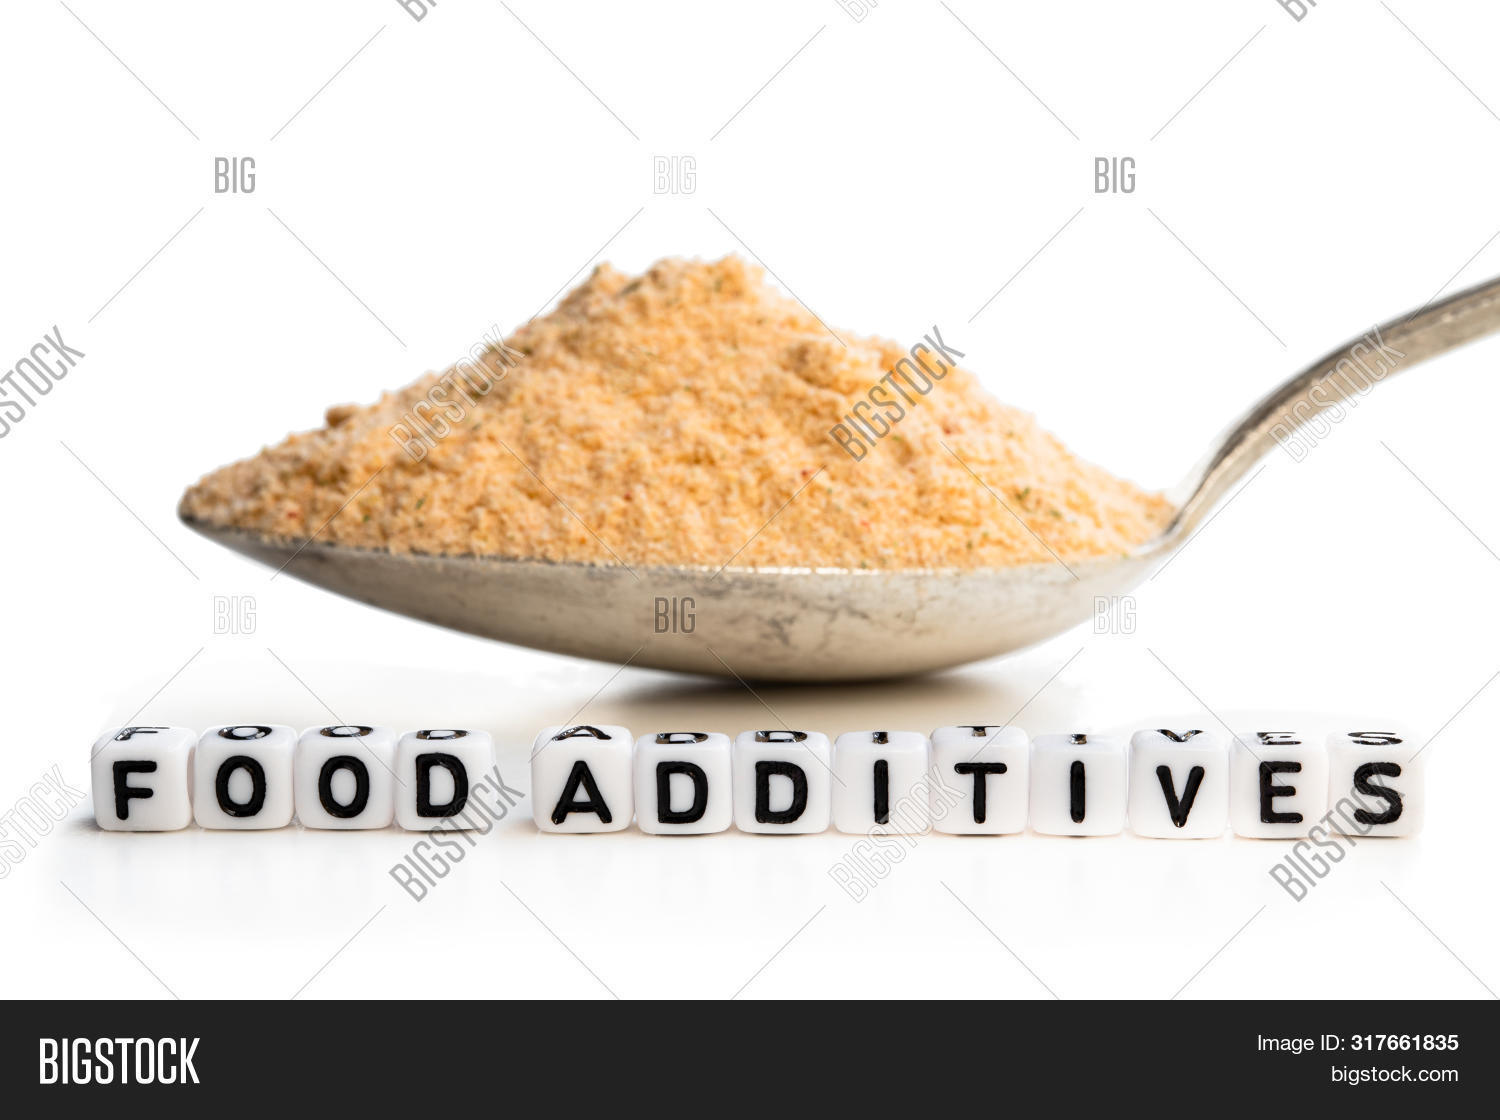 acidity,additive,agent,antioxidant,appearance,approved,artificial,bad,chemical,color,coloring,colour,concept,cube,danger,dry,enhance,enhancer,experiment,extract,flavor,flavour,food,fortifying,letter,mixed,modified,natural,preservatives,preserve,processing,quality,regulator,spices,spoon,stabilizer,storage,substance,supplement,sweetener,taste,toxic,unhealthy,various,white,word,yellow